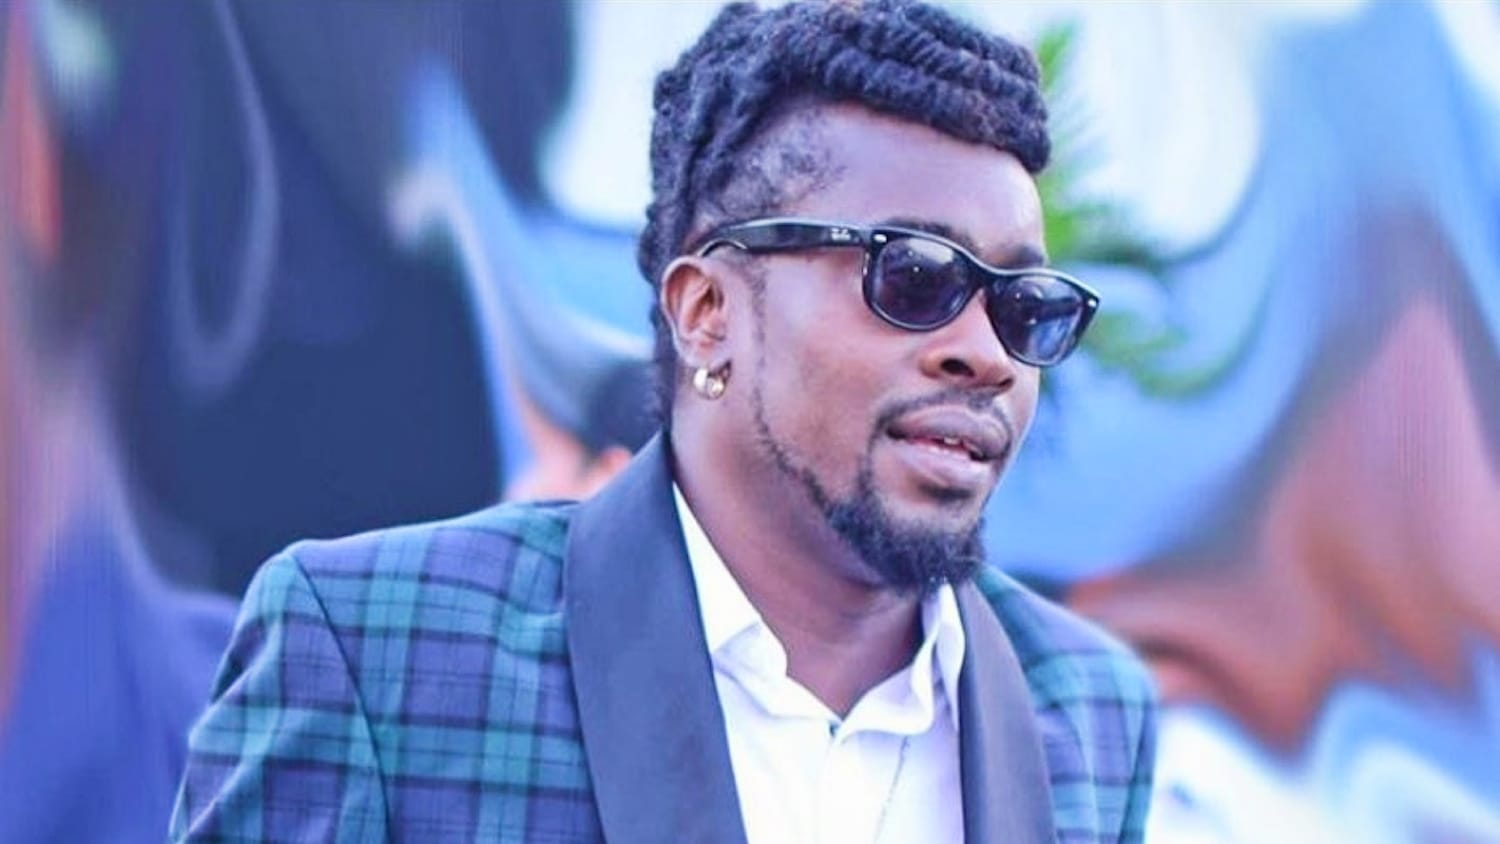 Beenie Man Visited By Police But Not Arrested For 'Breaching COVID Law'